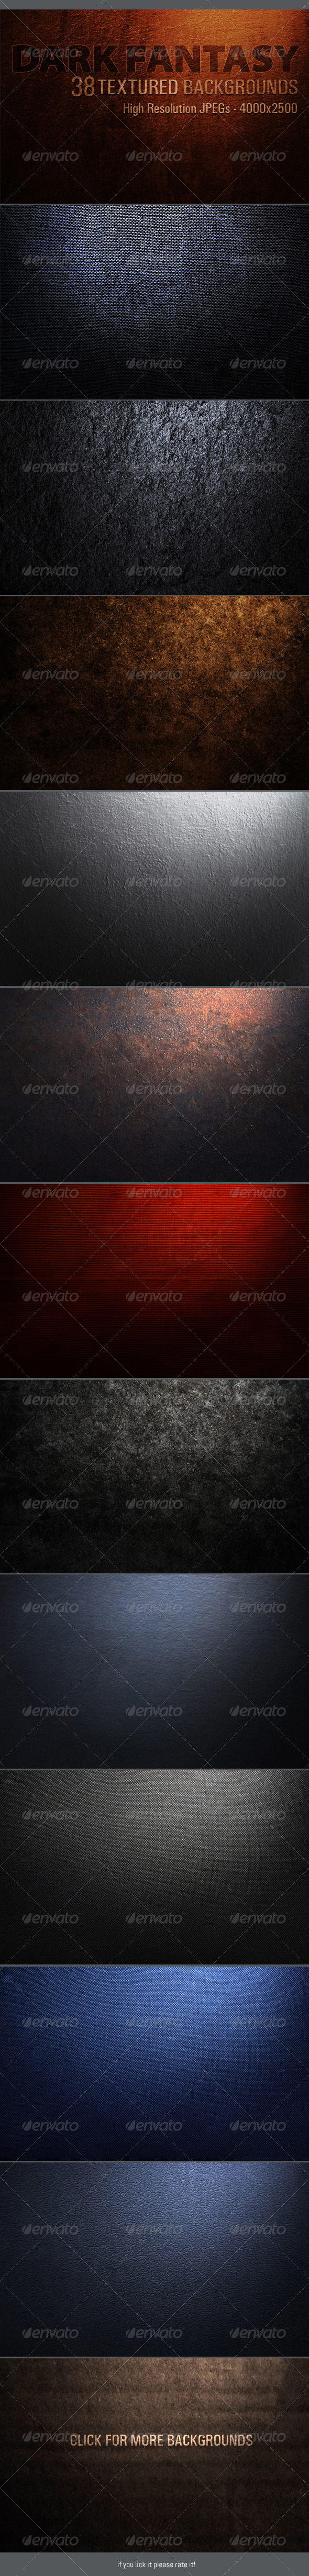 GraphicRiver 38 Textured Backgrounds 3208151